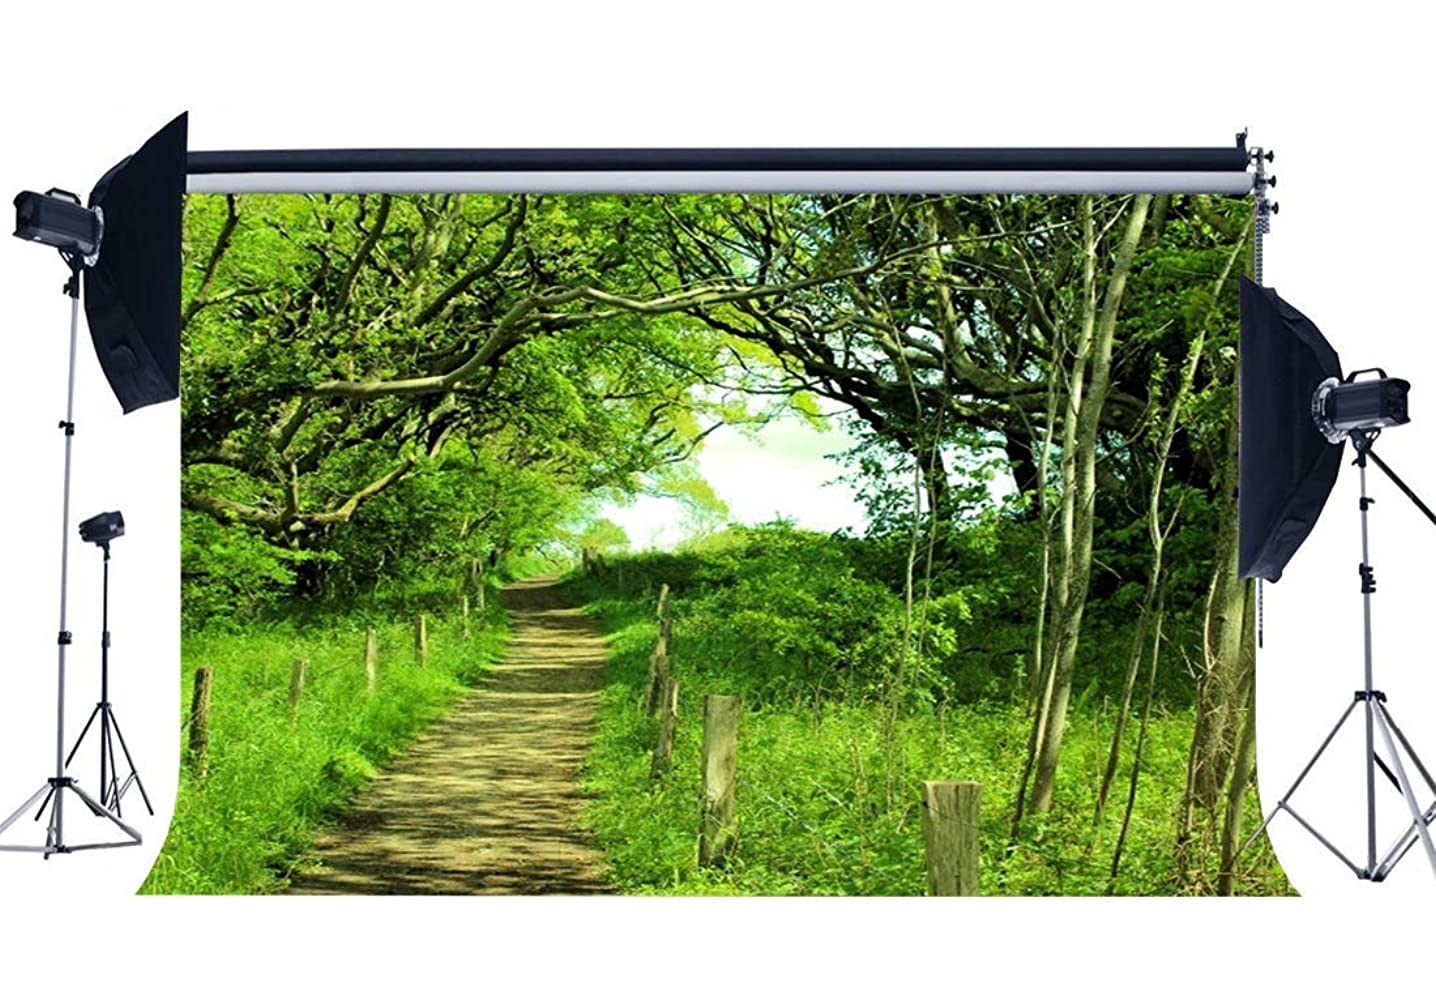 SZZWY Spring Backdrop 10X8FT Vinyl Rural Enchanted Jungle Forest Backdrops Trees Green Grass Meadow Dirt Road Path Wedding Photography Background for Picninc and Hiking Photo Studio Props QB149